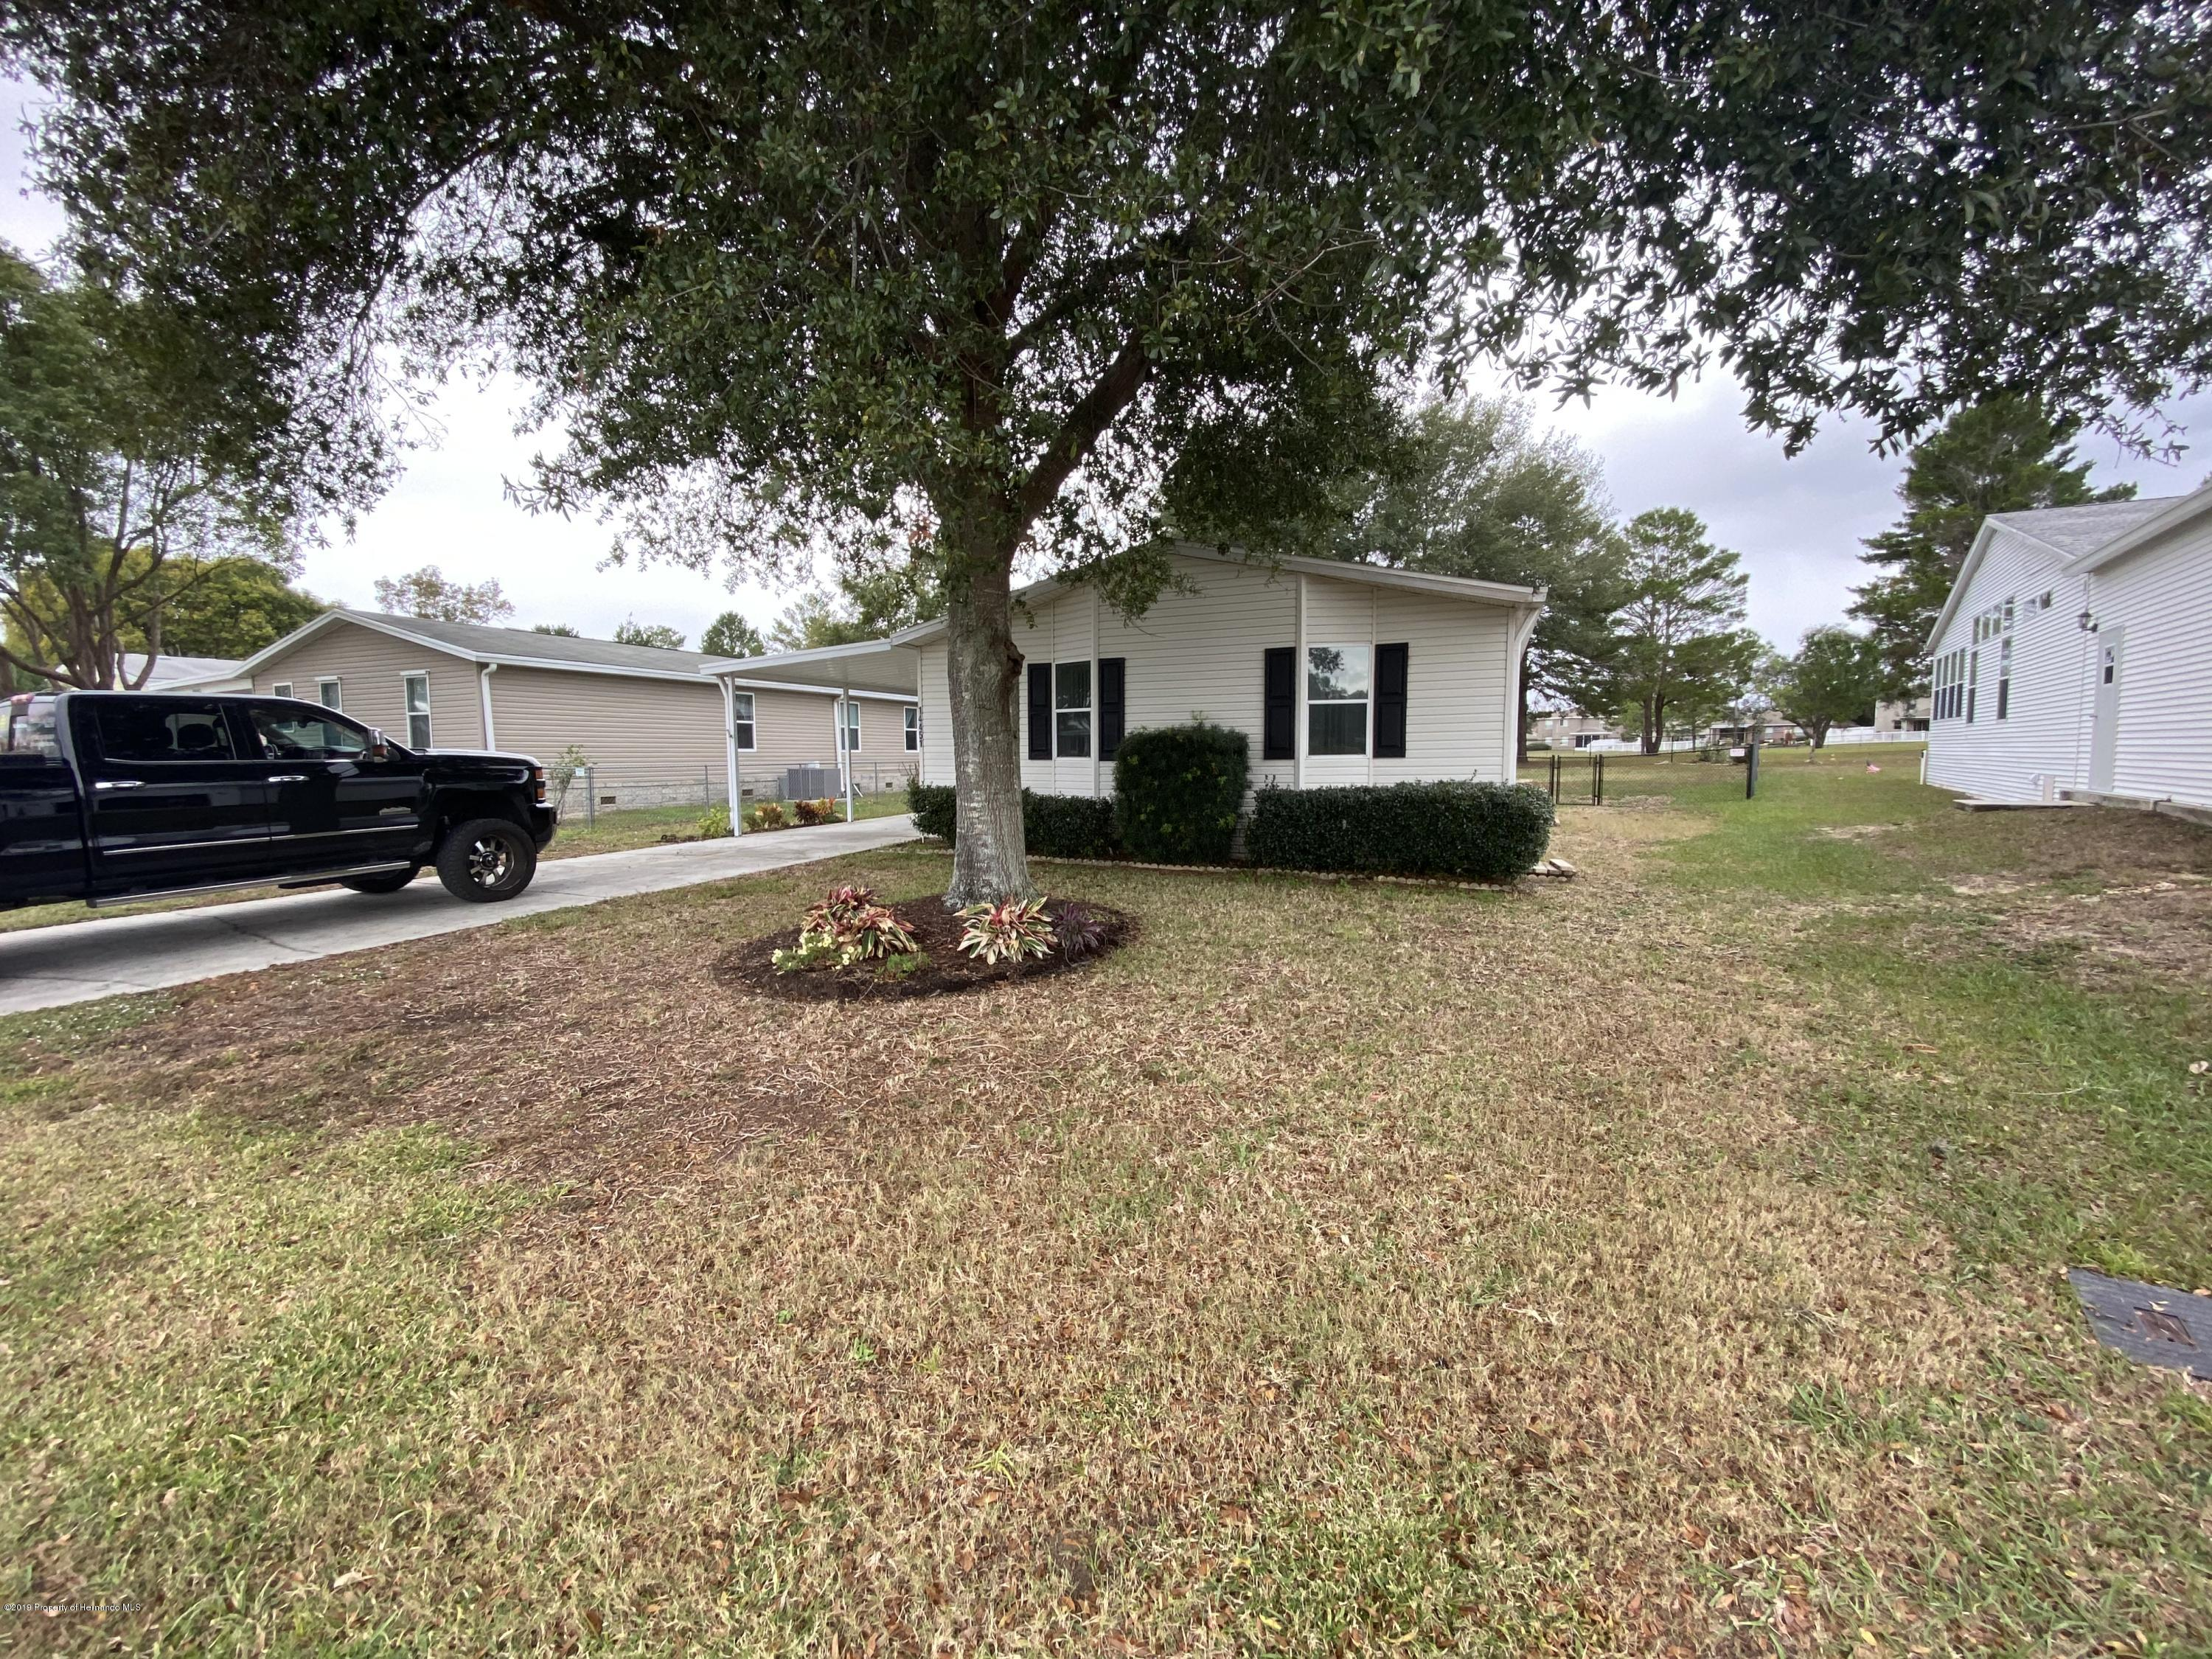 14451 Rialto Avenue, Brooksville, Florida 34613, 2 Bedrooms Bedrooms, ,2 BathroomsBathrooms,Residential,For Sale,Rialto,2206096